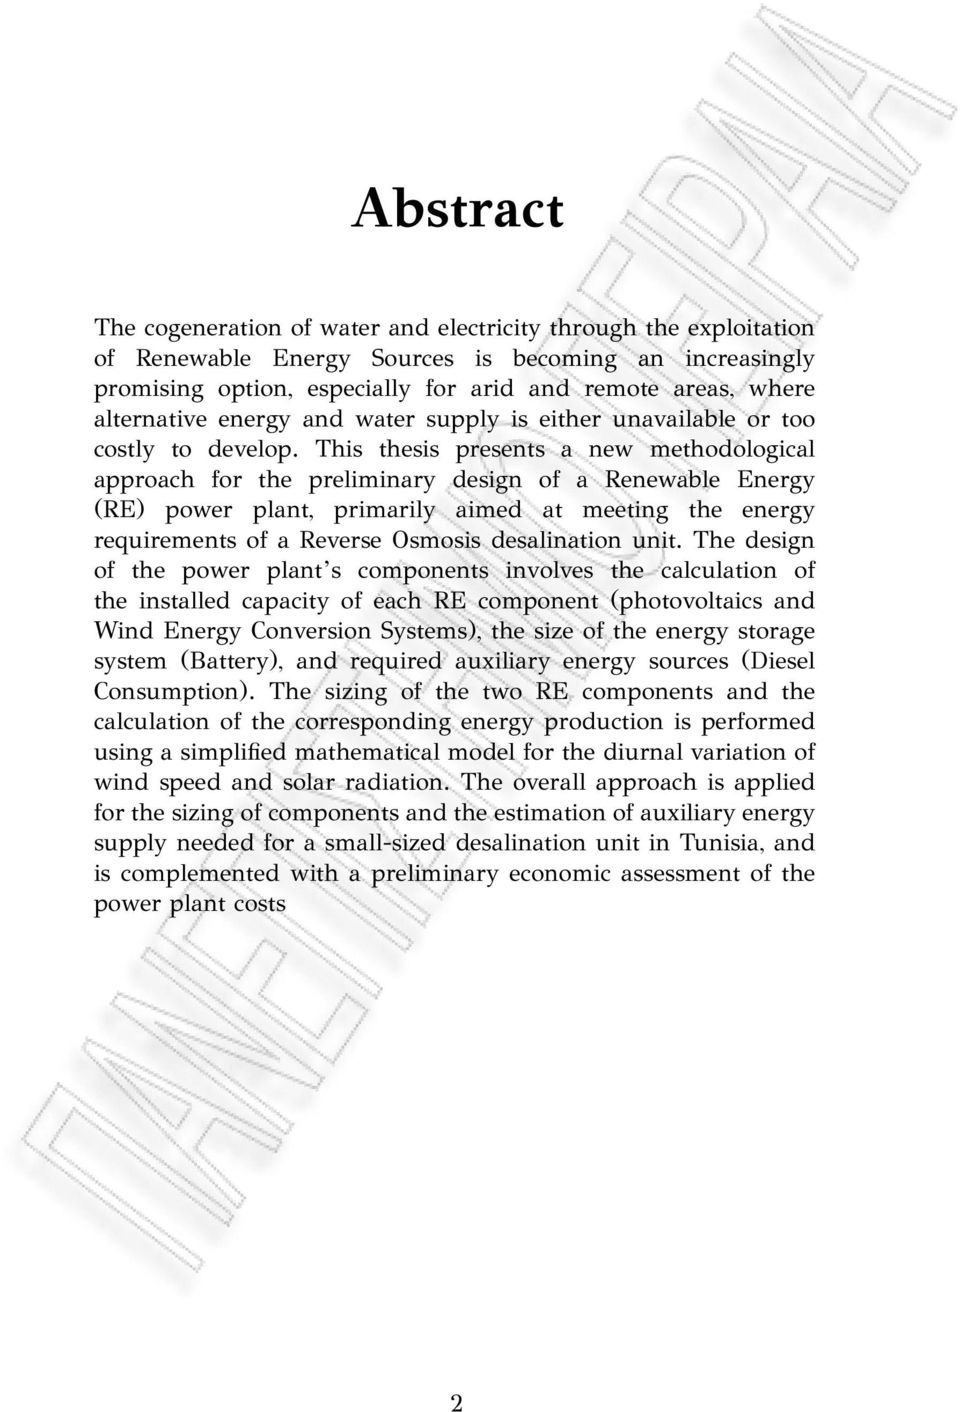 This thesis presents a new methodological approach for the preliminary design of a Renewable Energy (RE) power plant, primarily aimed at meeting the energy requirements of a Reverse Osmosis